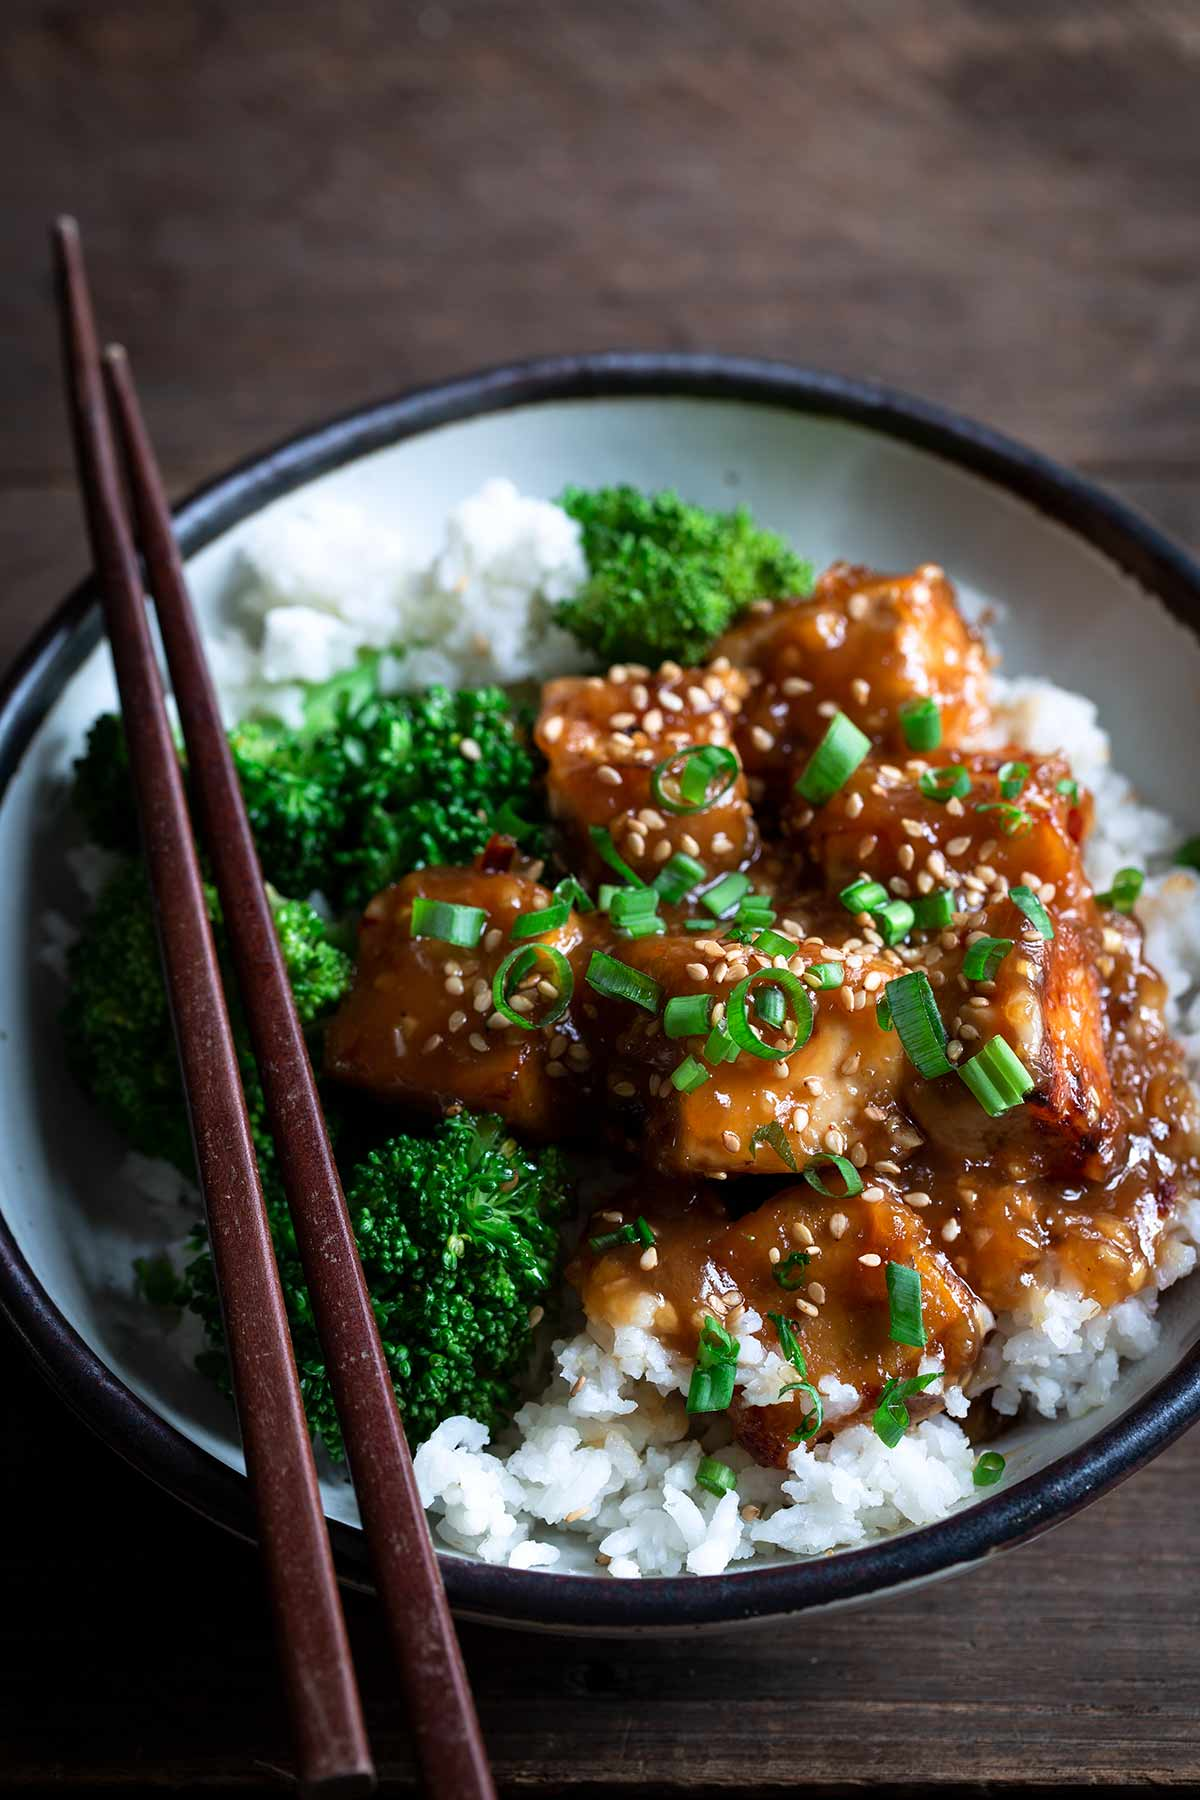 General Tso's Tofu with chopsticks to the left